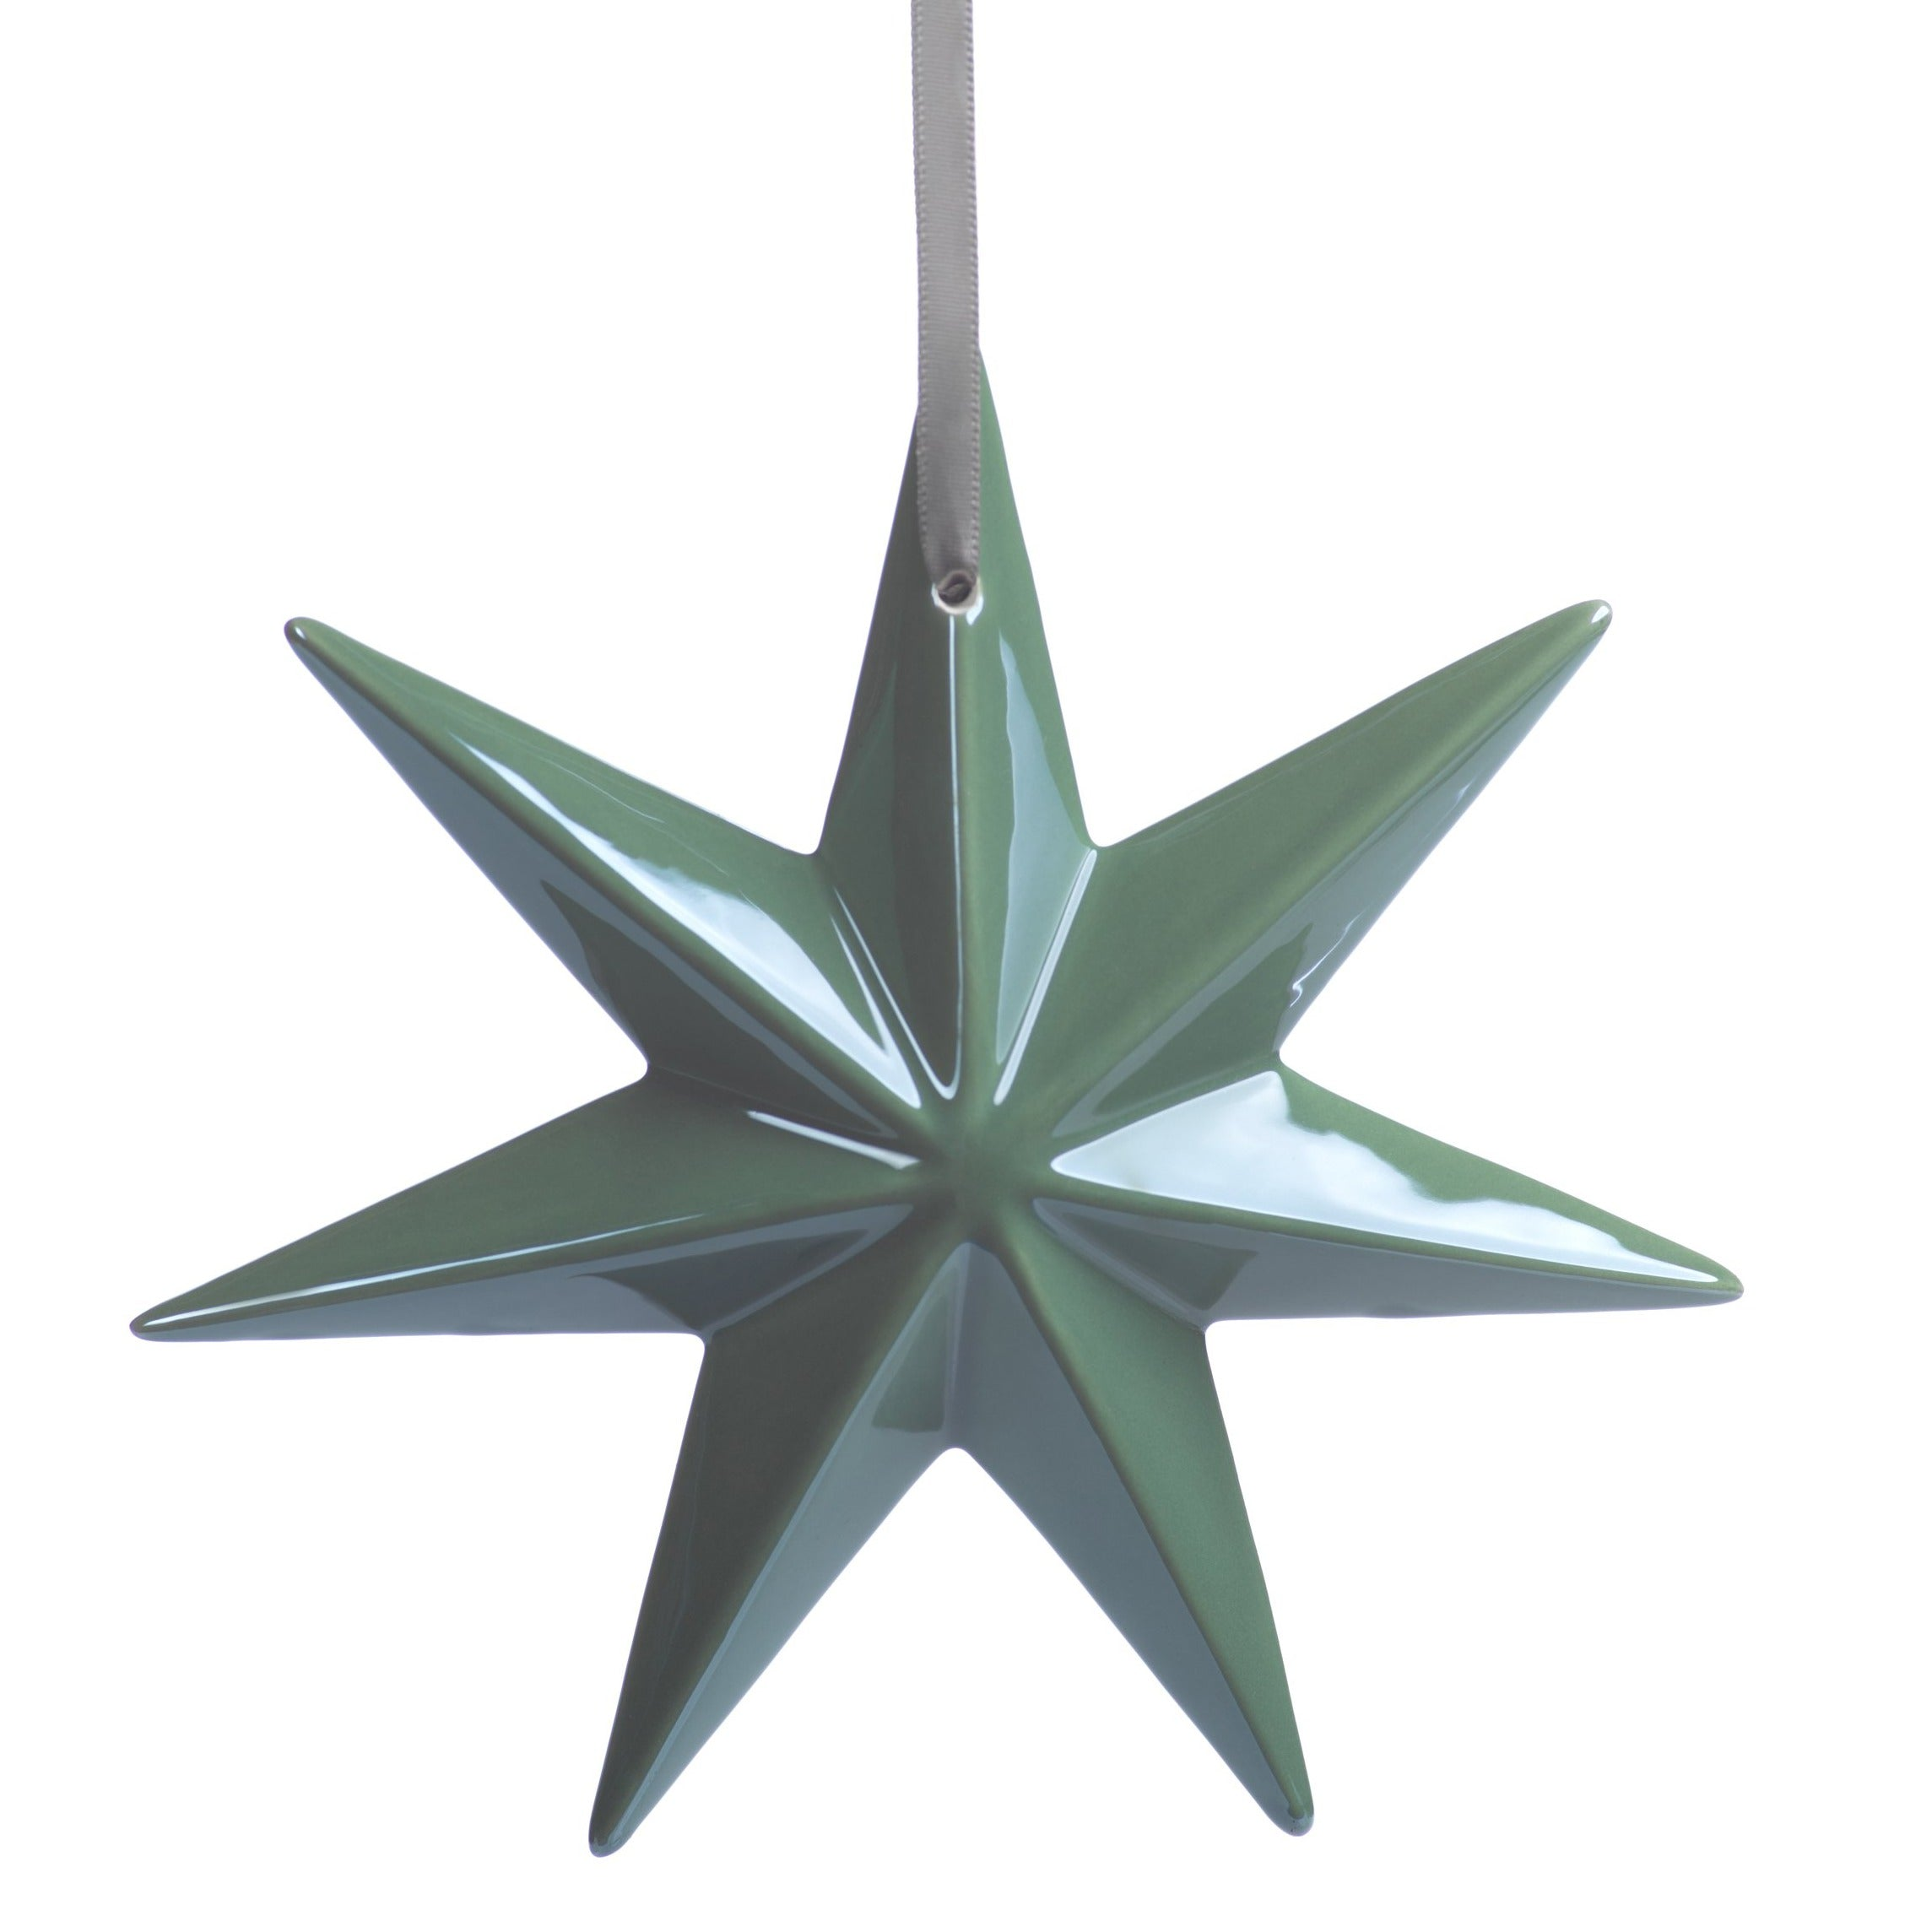 Green Ceramic Star Ornament - CARLYLE AVENUE